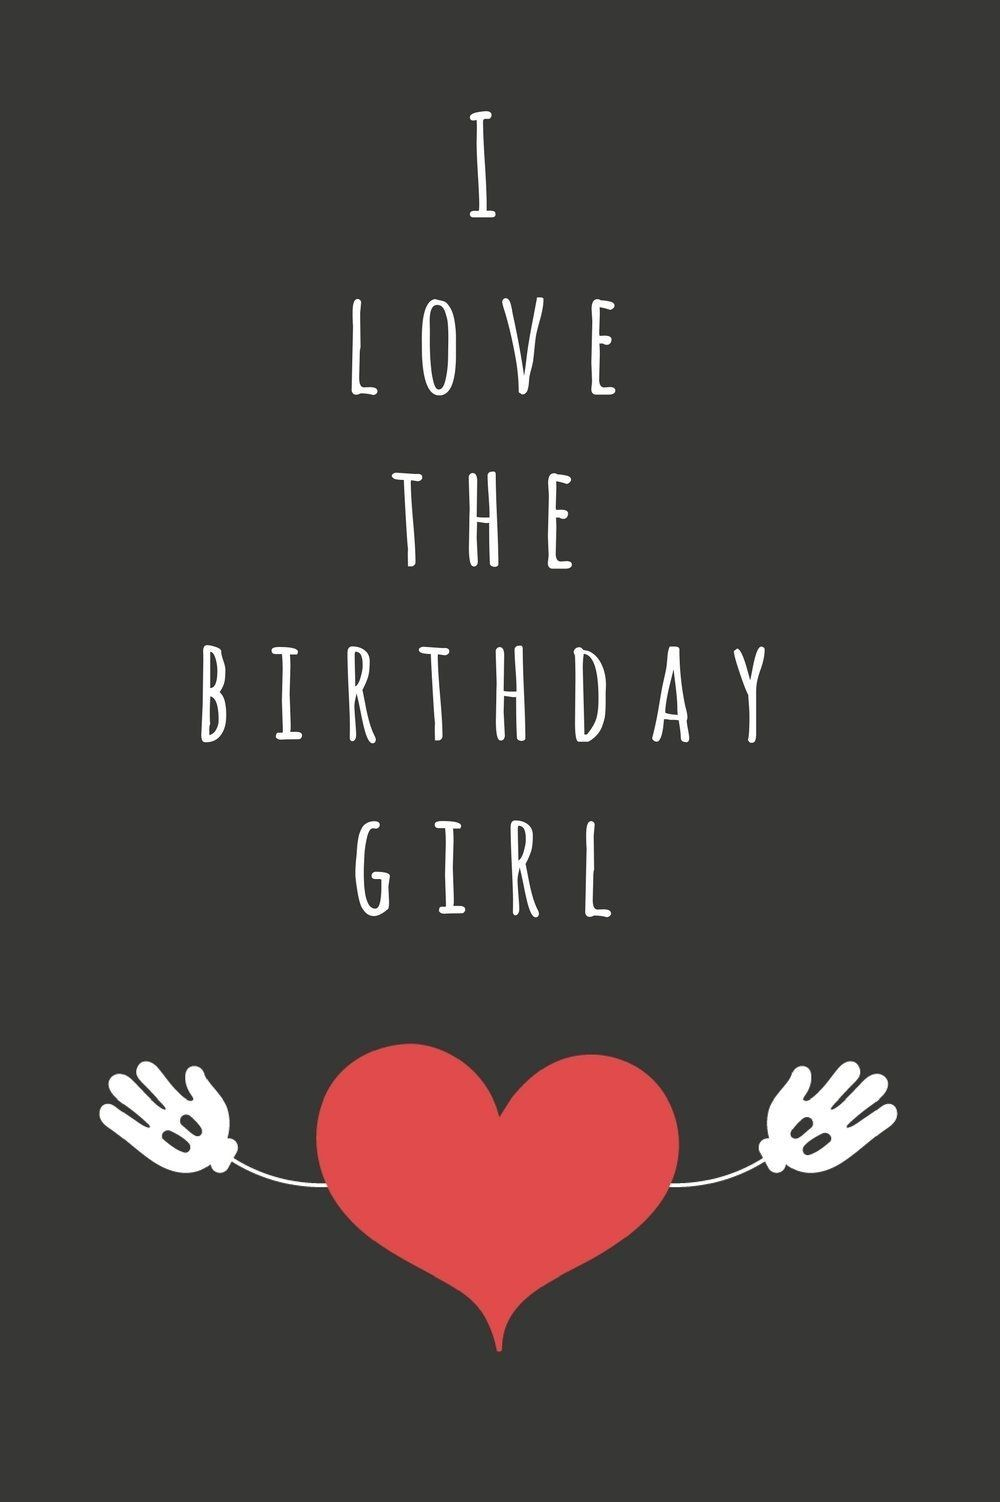 Cute Happy Birthday Love Messages & Images For Girlfriend